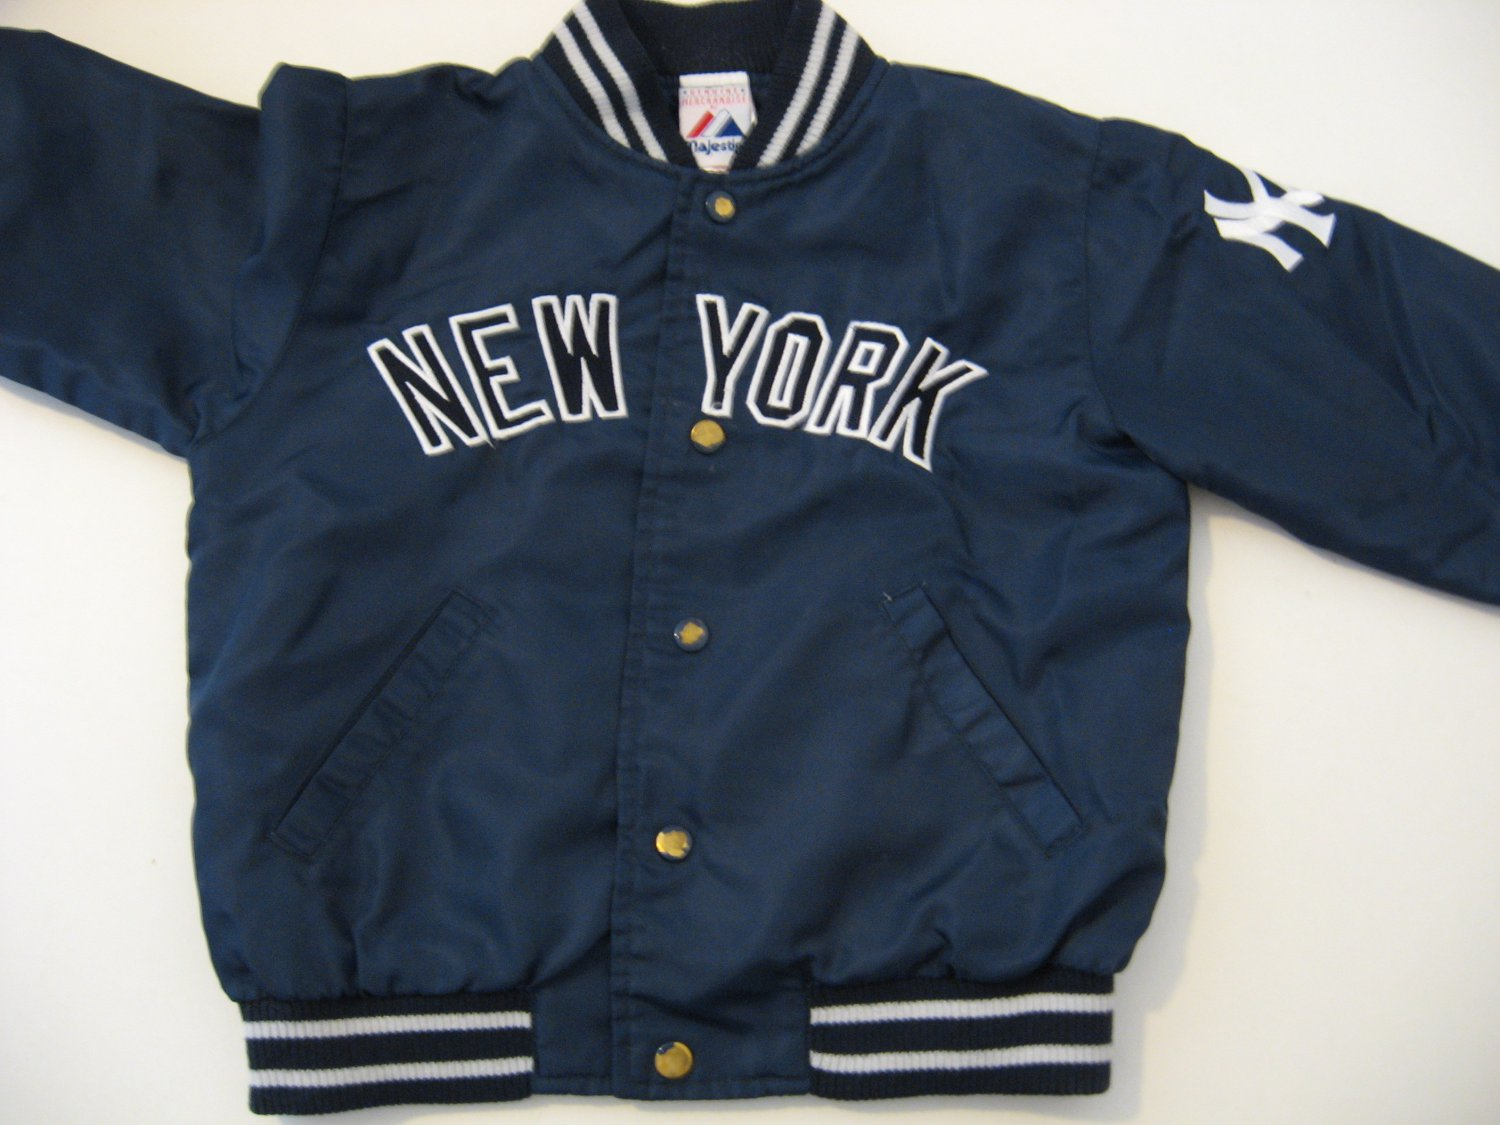 Kids - New York Yankees Jacket